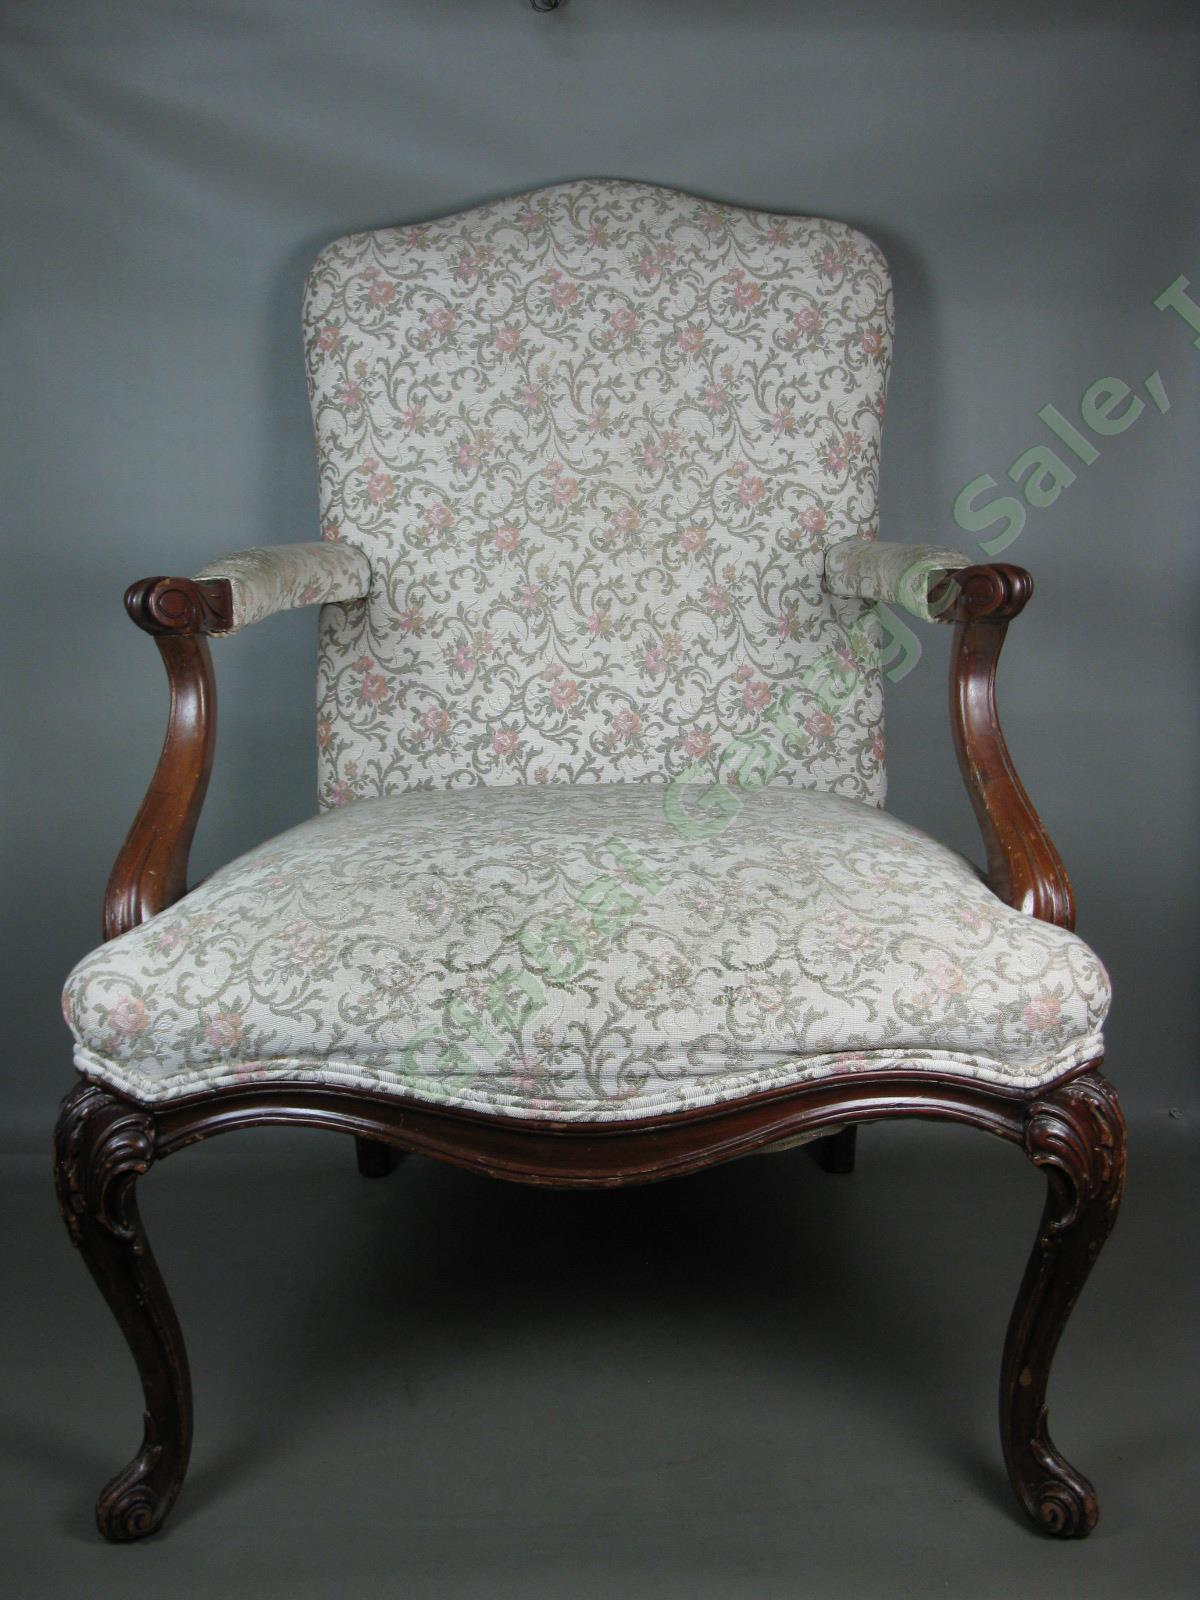 antique queen anne chair knoll diamond vtg off white floral upholstered arm